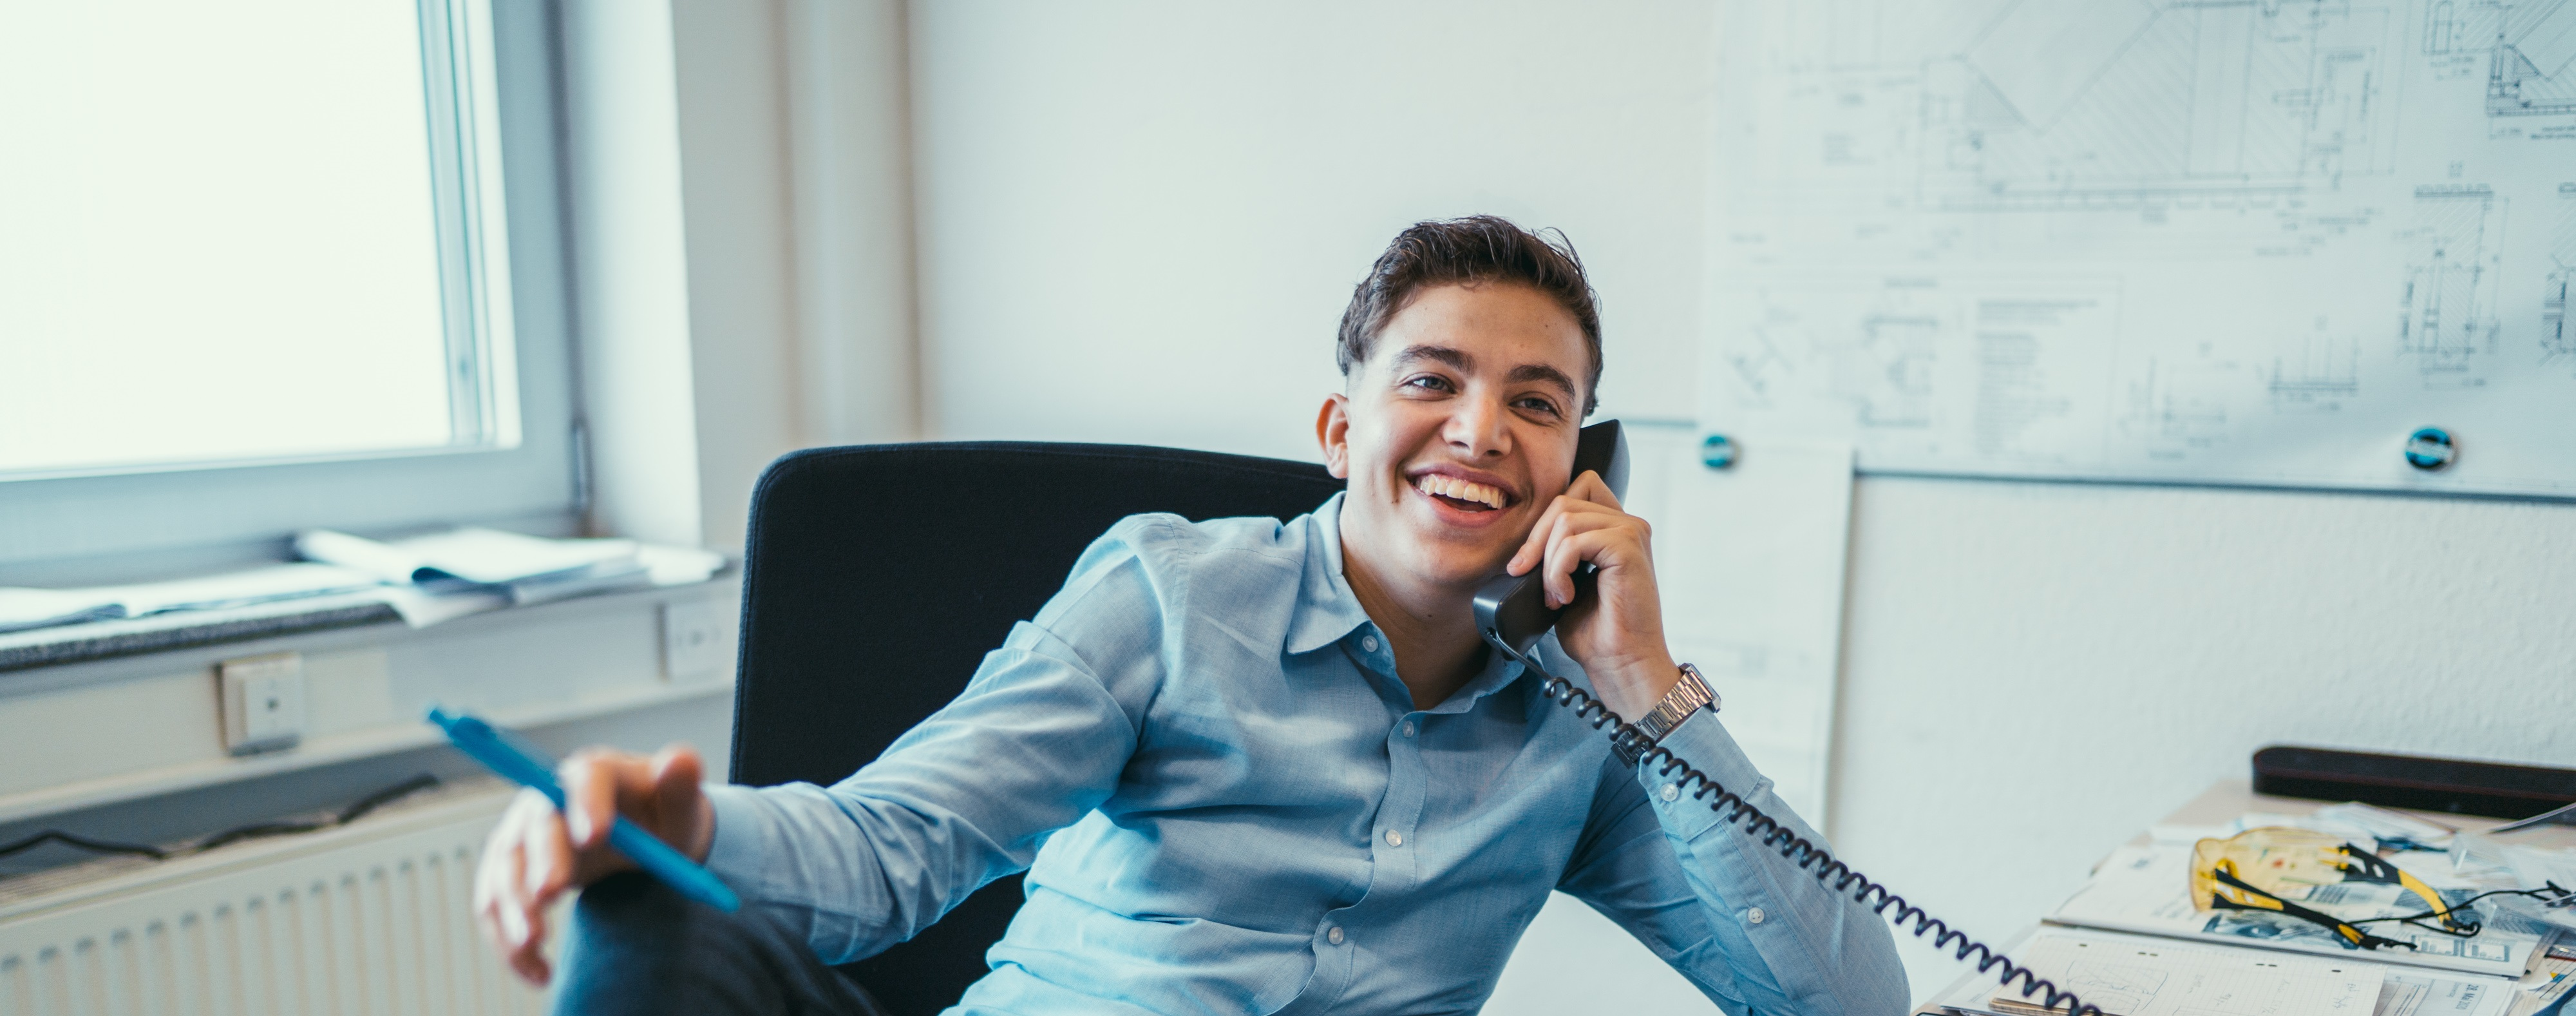 Industrial clerk apprentice sitting at a desk, smiling while talking on the phone